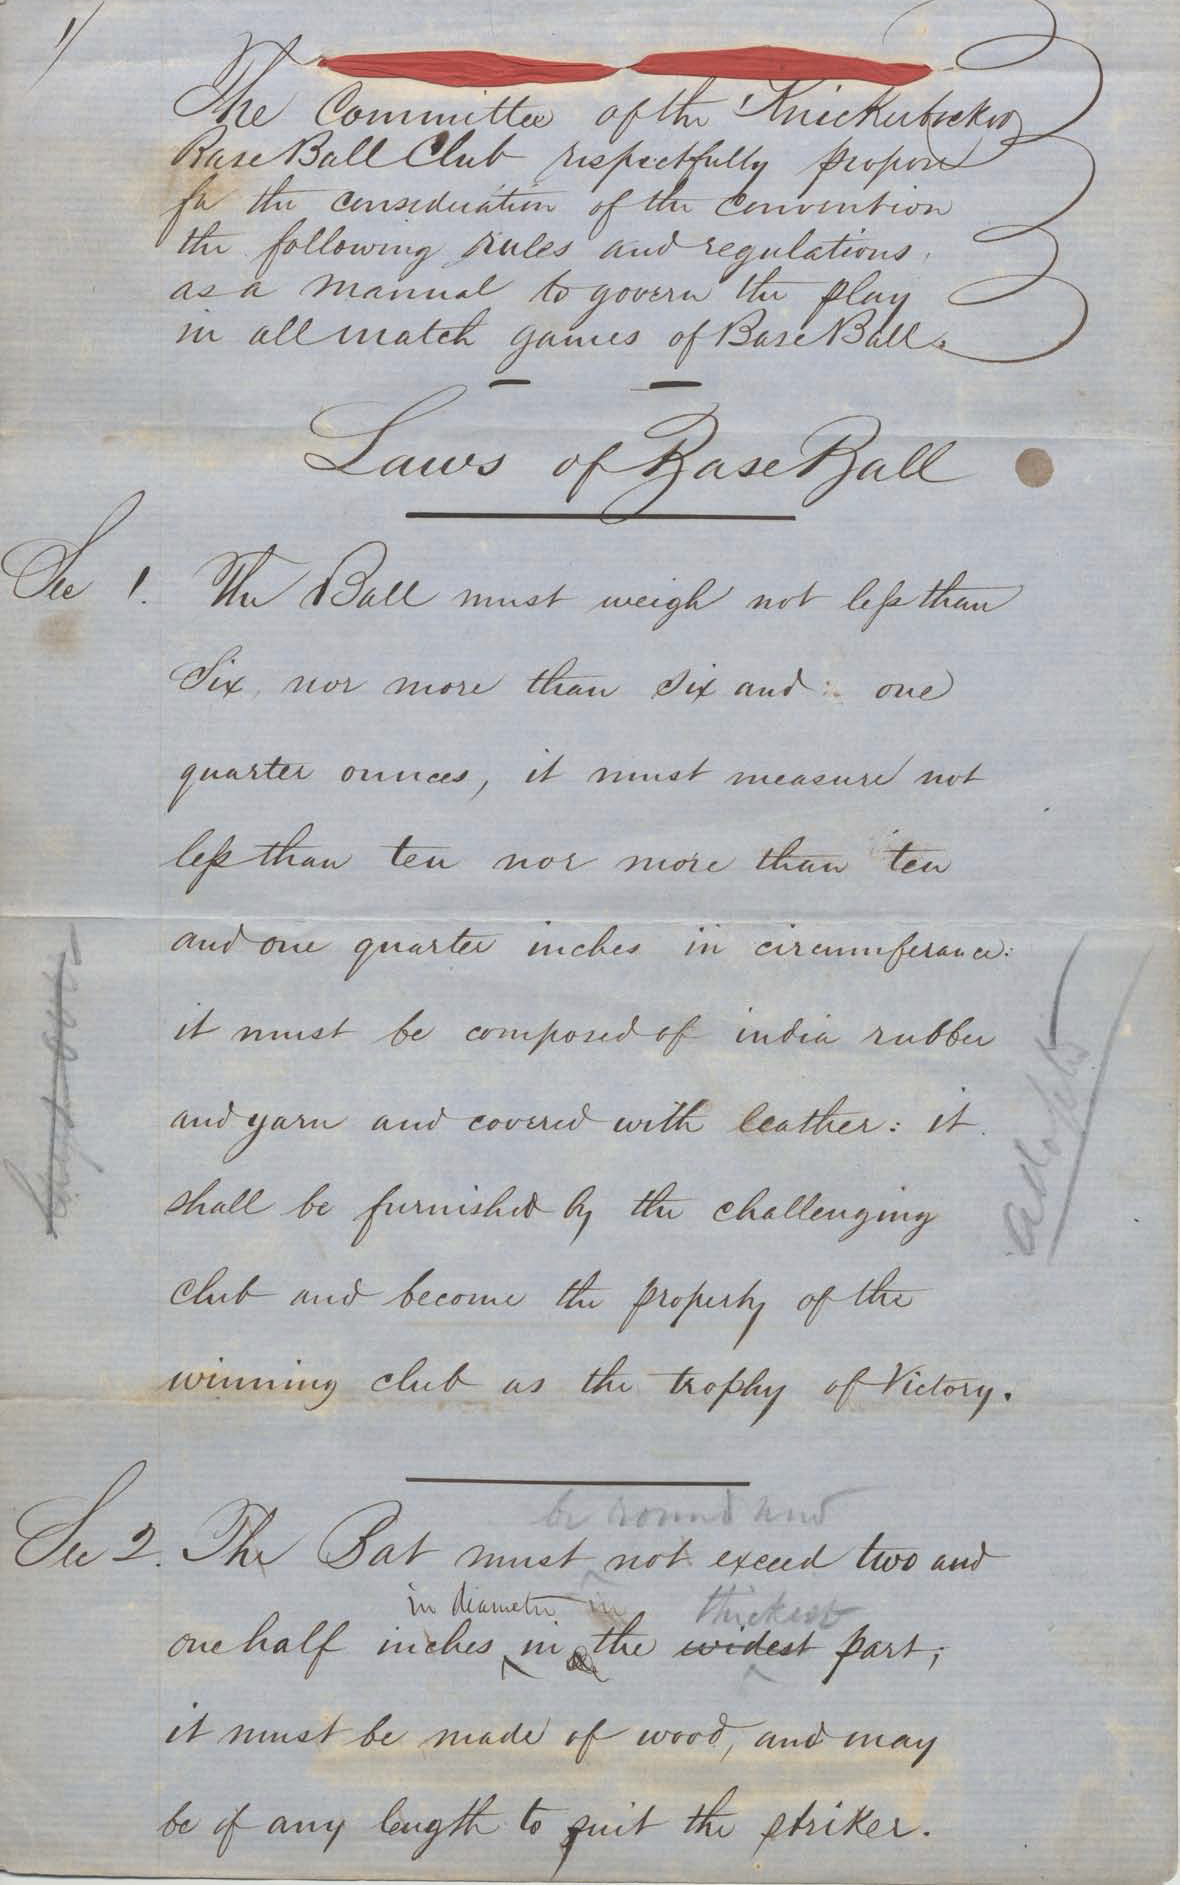 Laws of Baseball, KBBC to Convention, January 22, 1857, page 1 (COURTESY OF JOHN THORN)